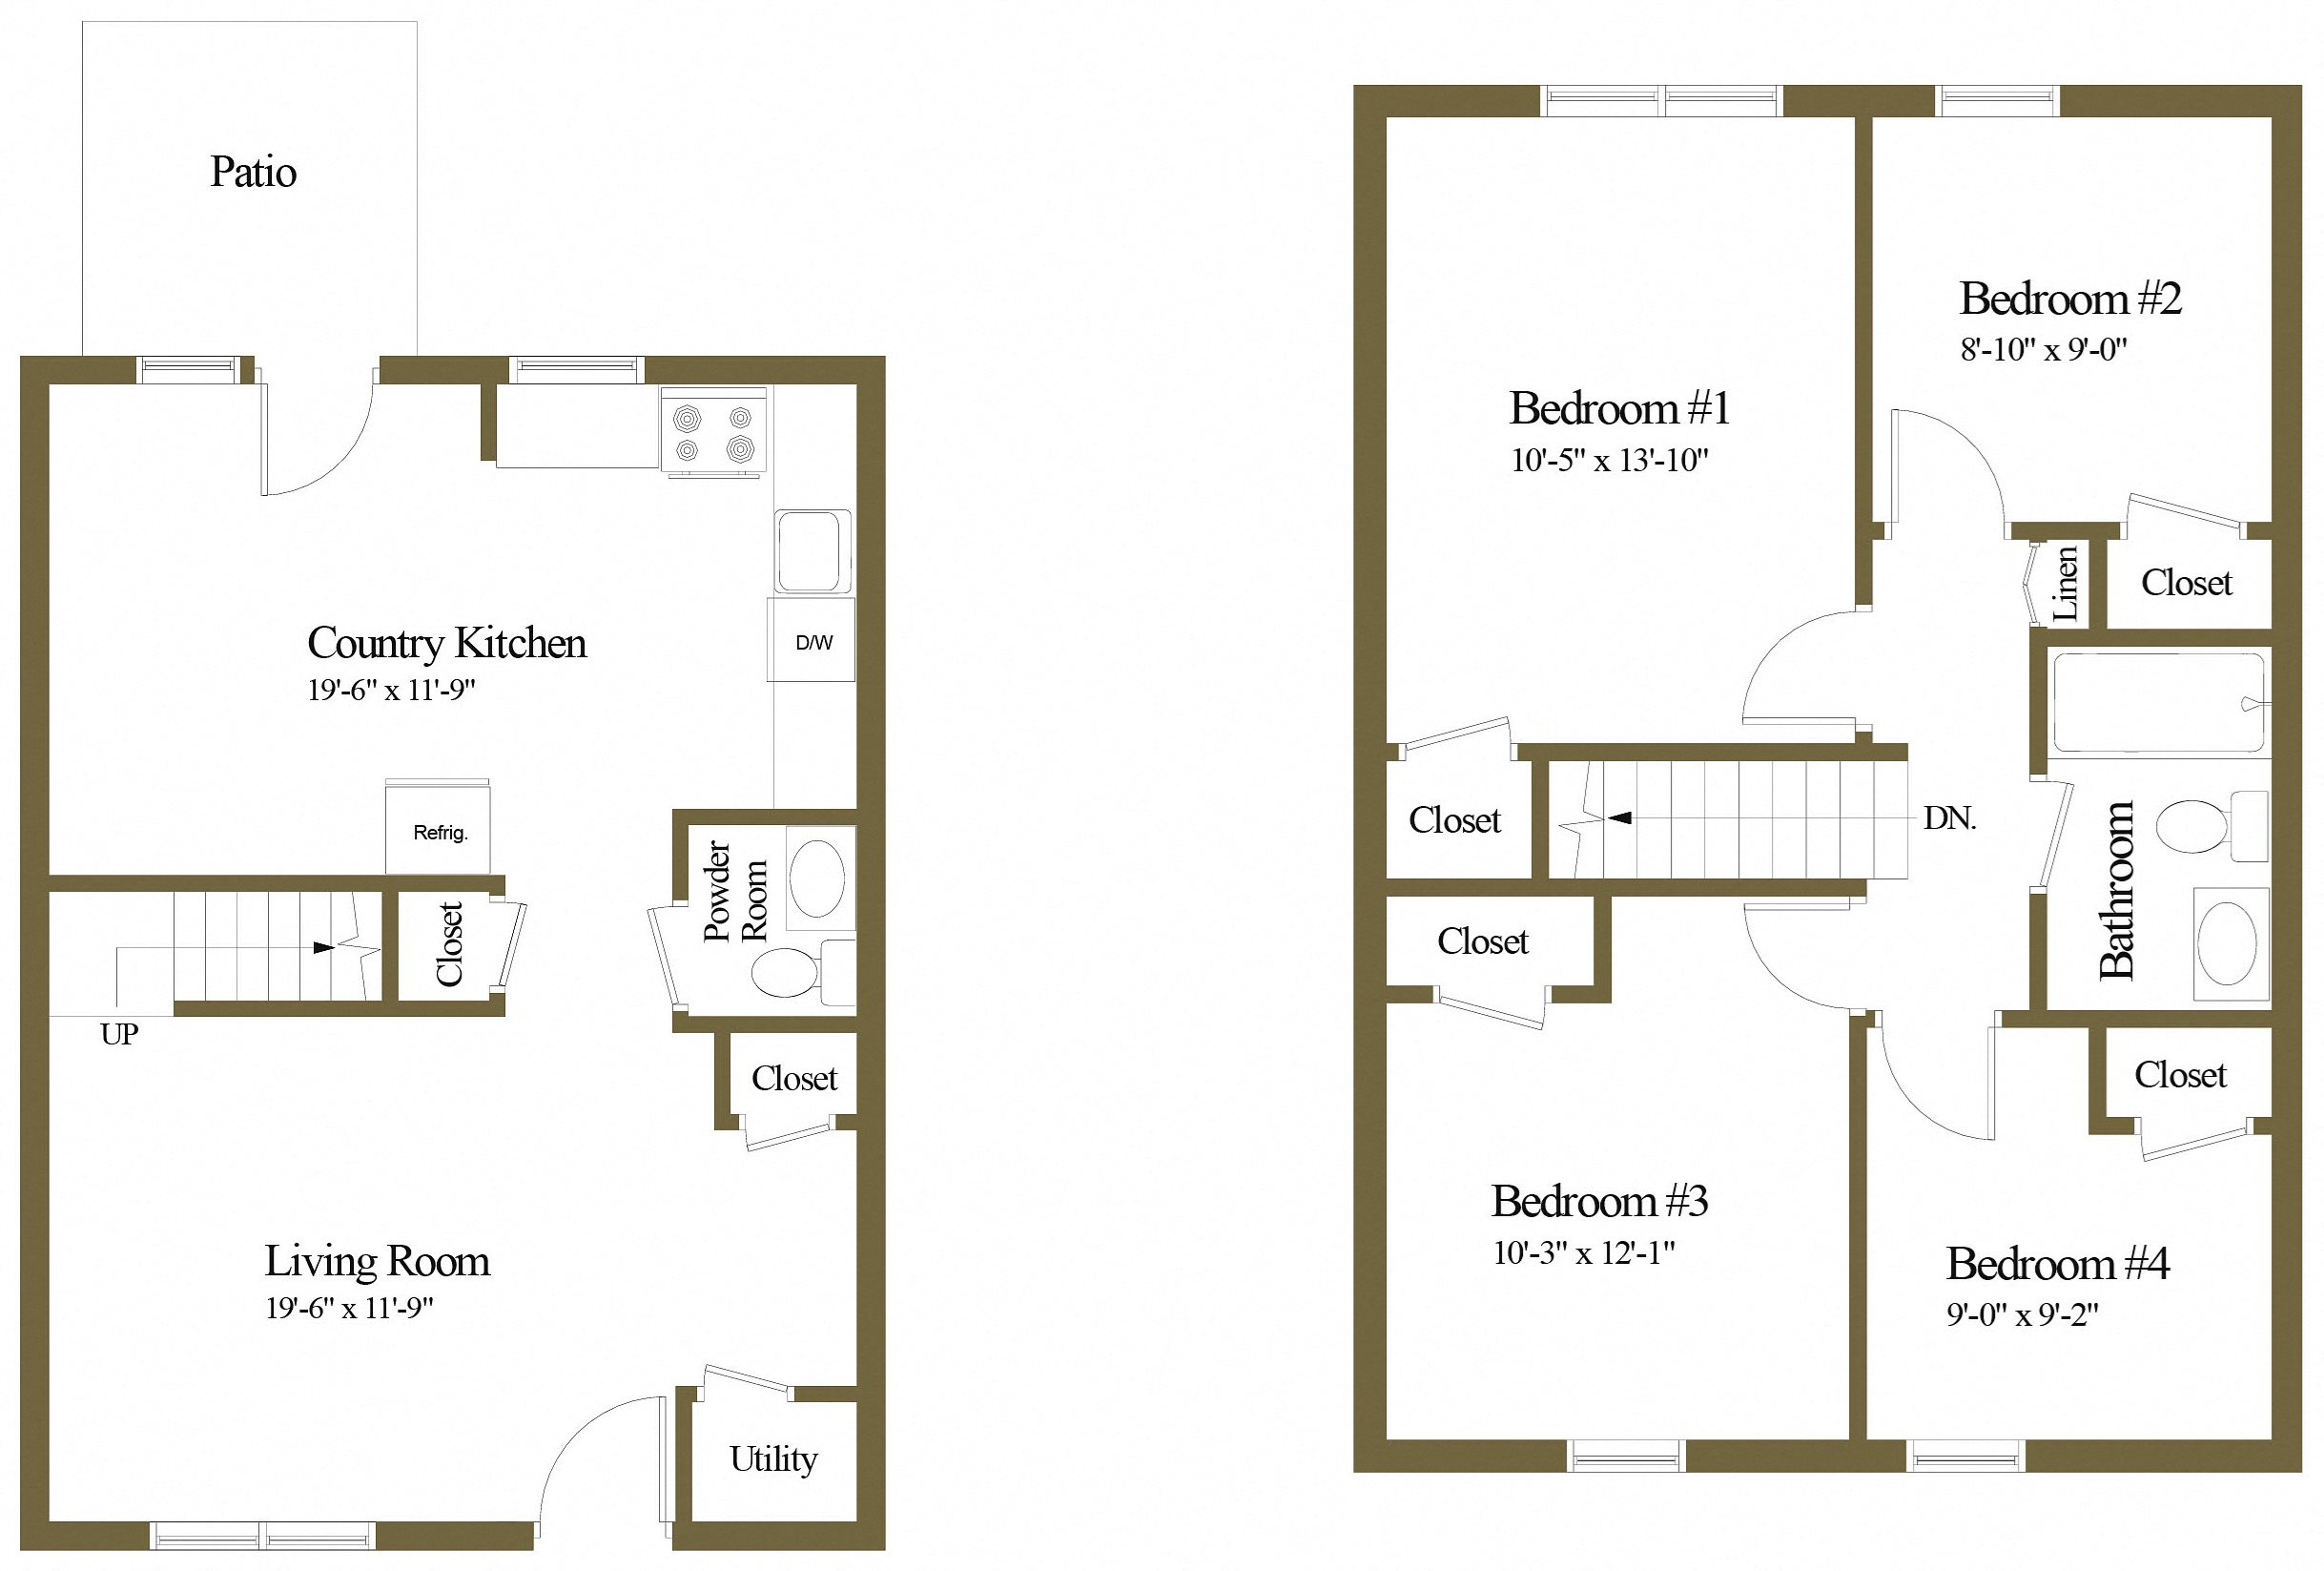 4 Bedroom 1.5 Baths Floor Plan 4